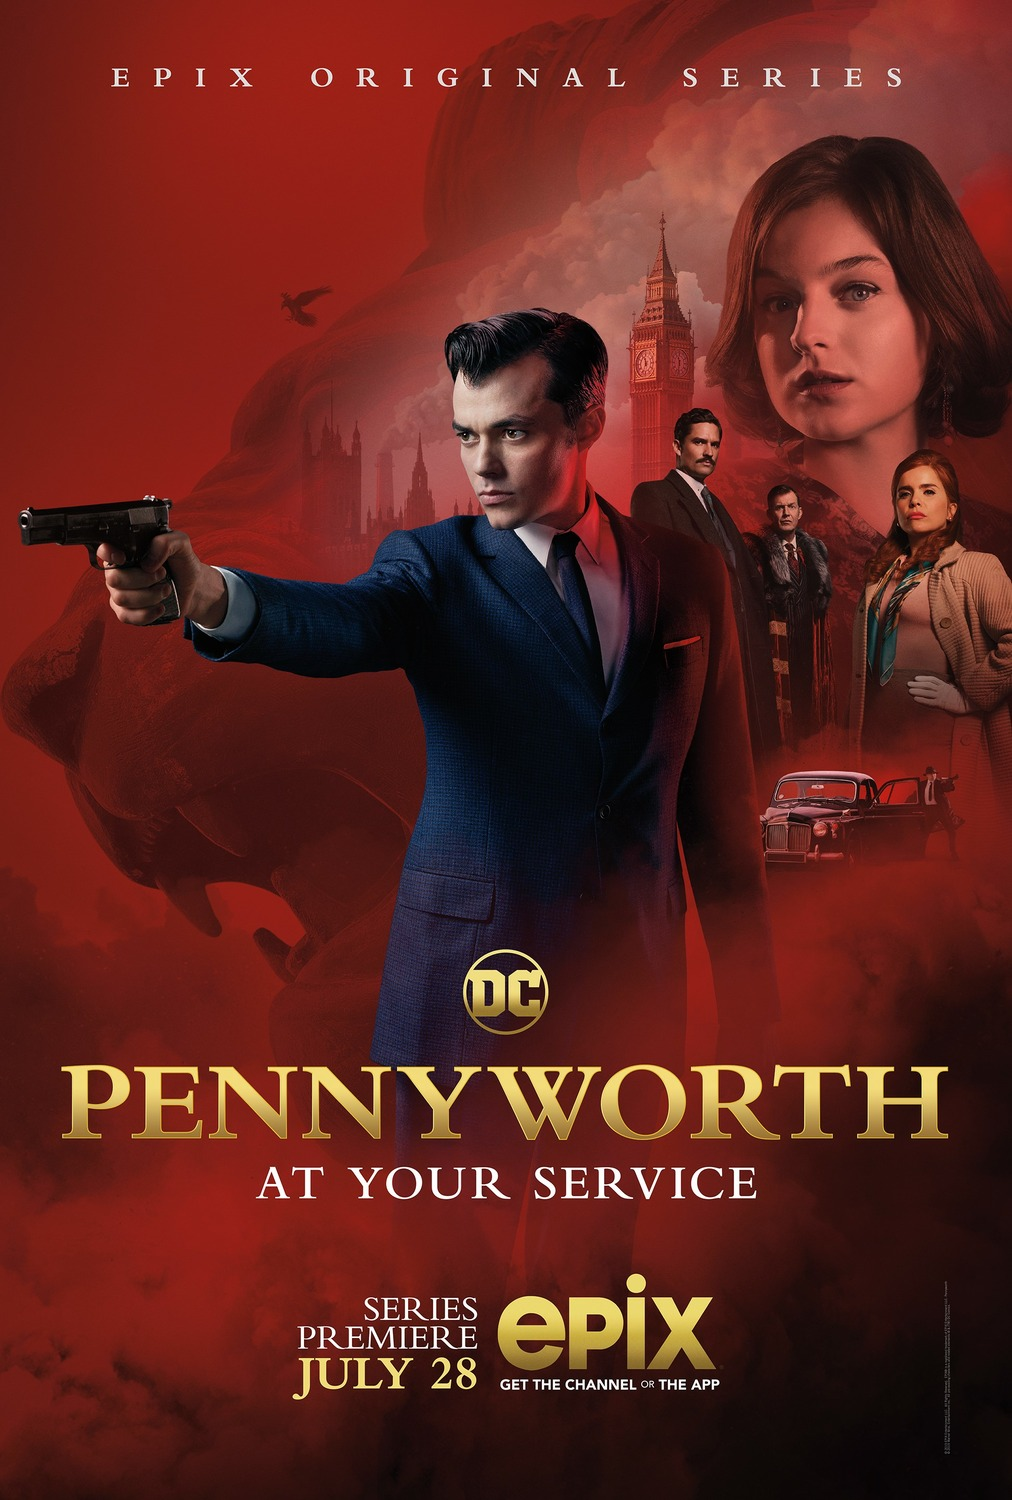 Pennyworth premiere on EPIX hints relationship between Thomas and Martha